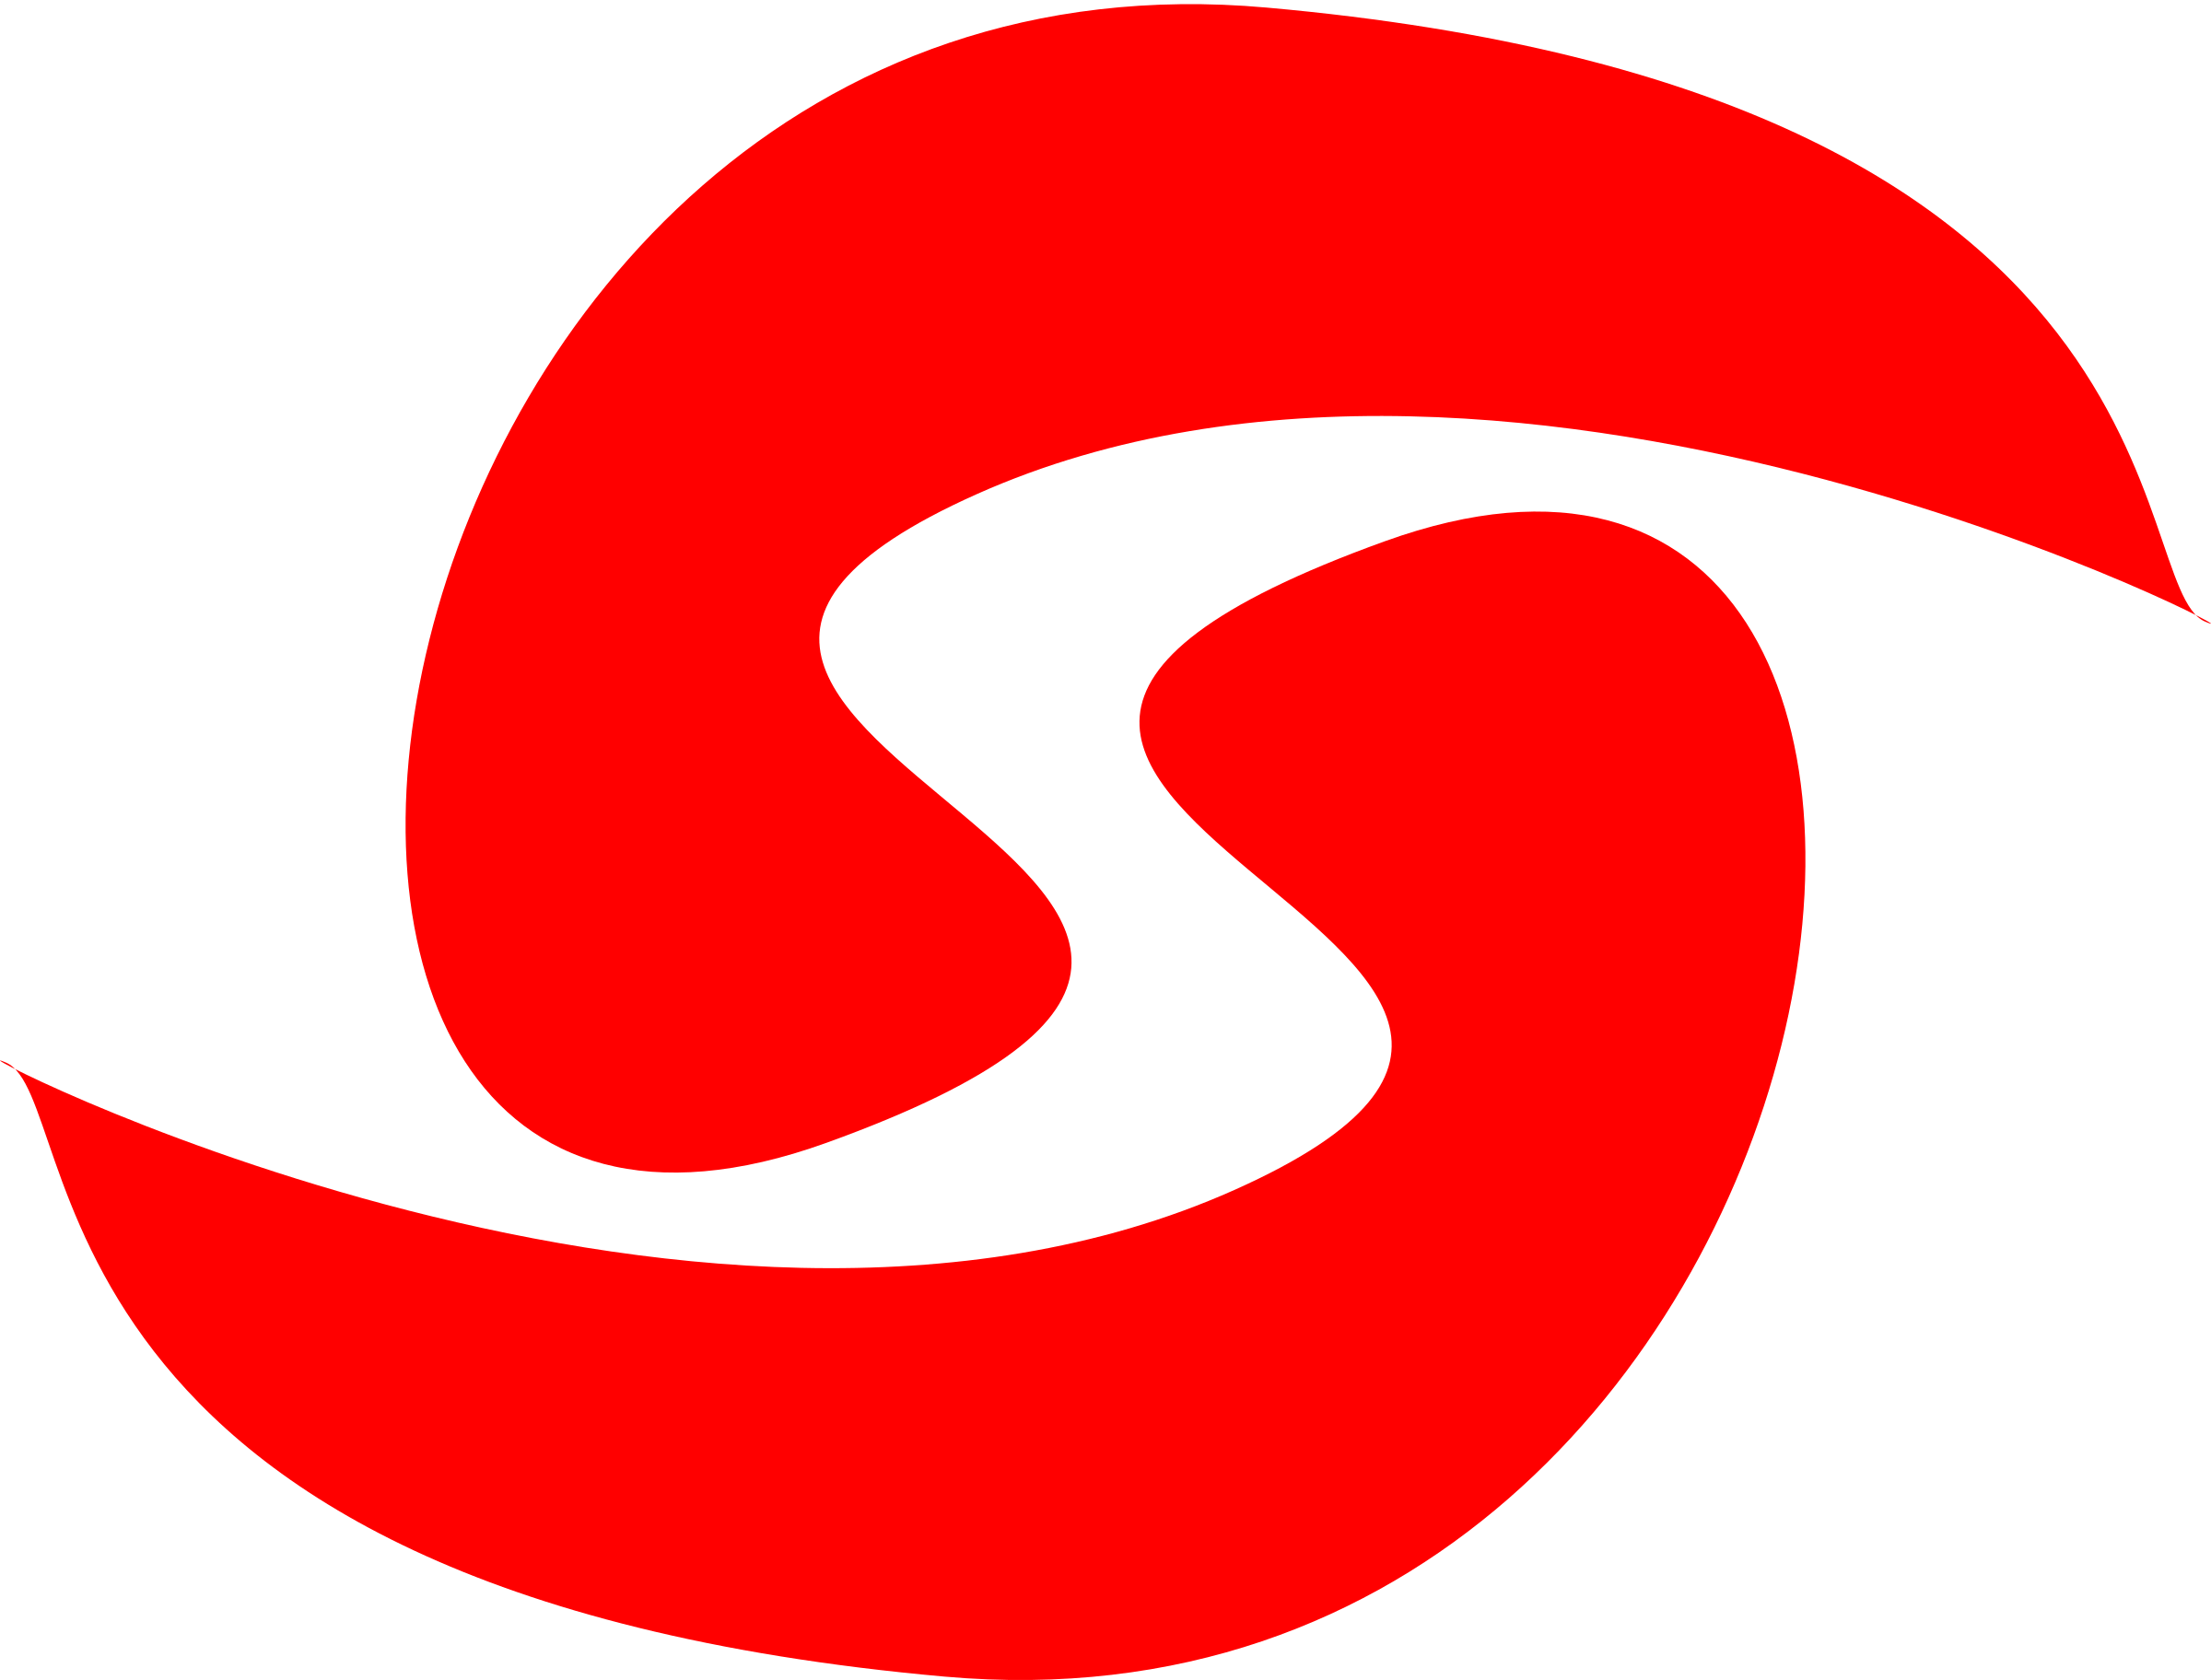 S logo png. Icons free and downloads